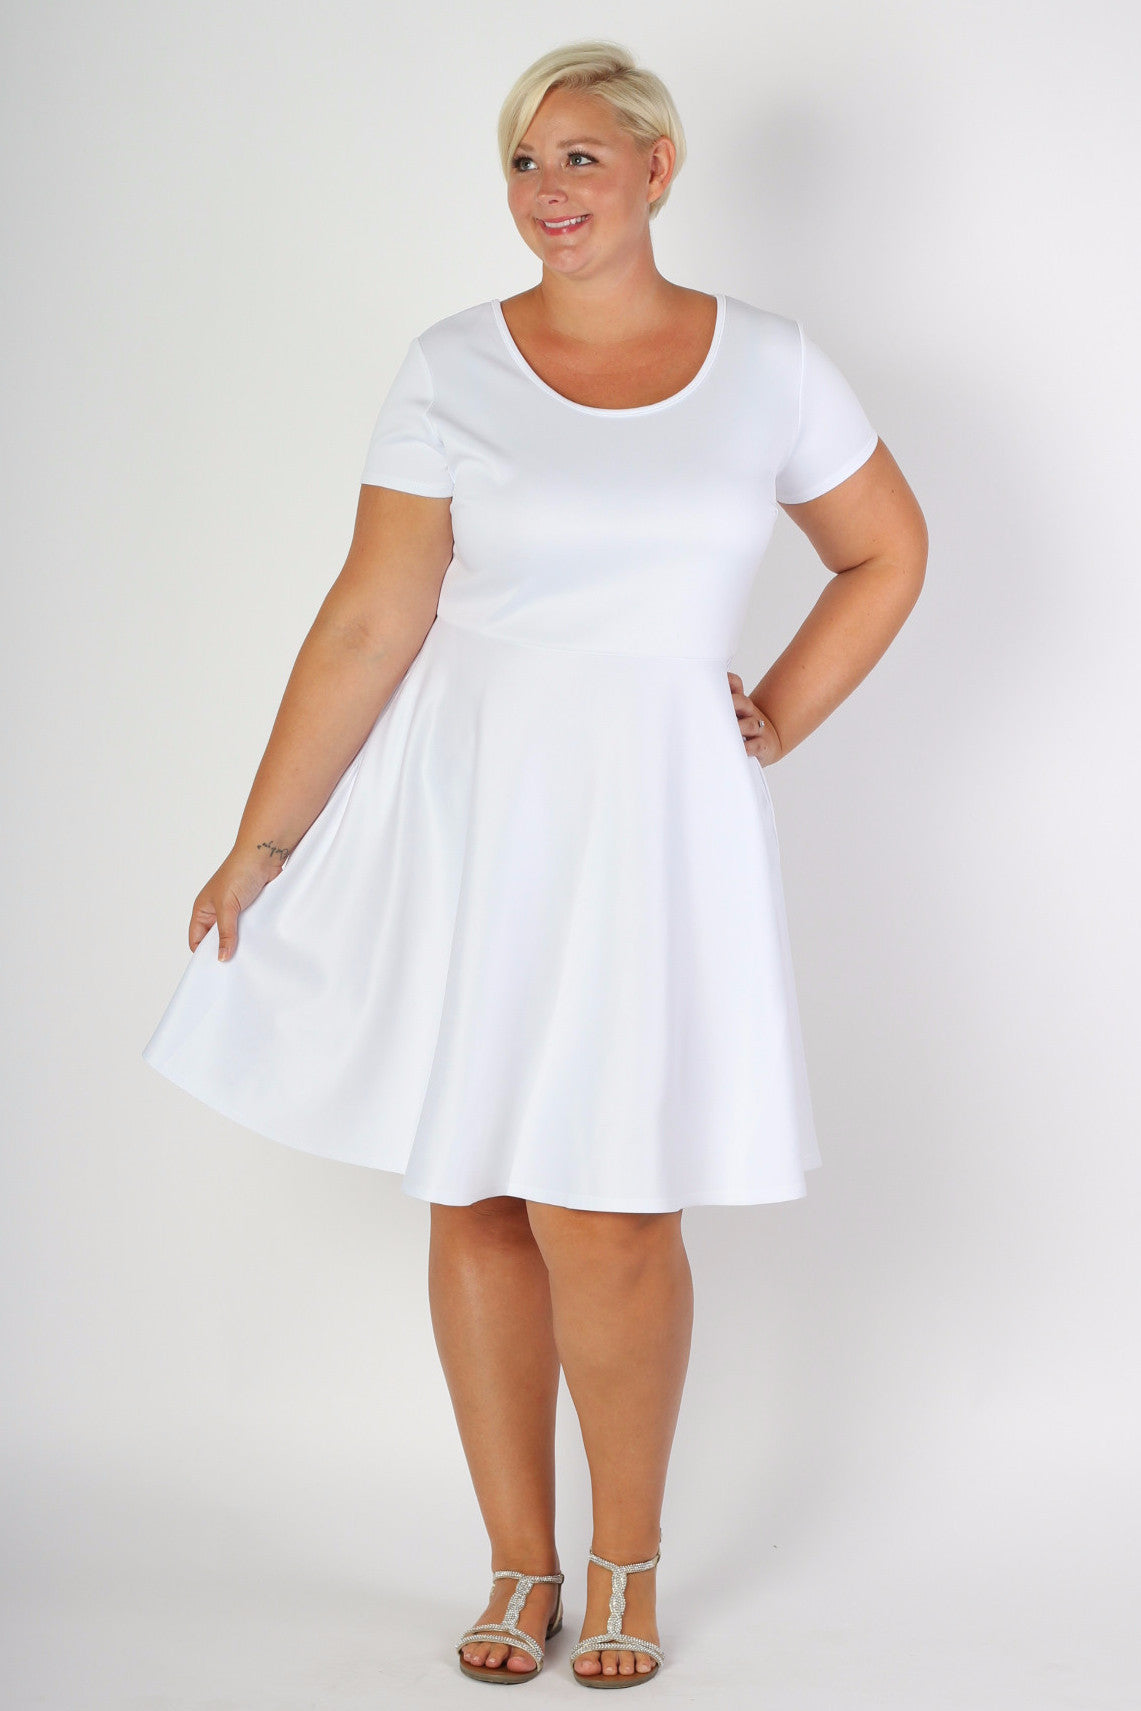 Our #1 Skater Dress now in more color and stripe options! This dress is a gorgeous bright white. Our signature fit and flare silhouette perfect for any body type. Made with soft and forgiving scuba fabric, you will be comfortable and confident all day long in any situation! Plus, this gorgeous dress has pockets now! 96% Rayon, 4% Spandex Hand wash with cold water Do not bleach Hang or line dry Size Note: Be sure to purchase the size that would fit your top (don't worry about the bottom size). The fabric is nice and stretchy and true to size. Front length Back length Arm hole Skirt length Size:14/16 39